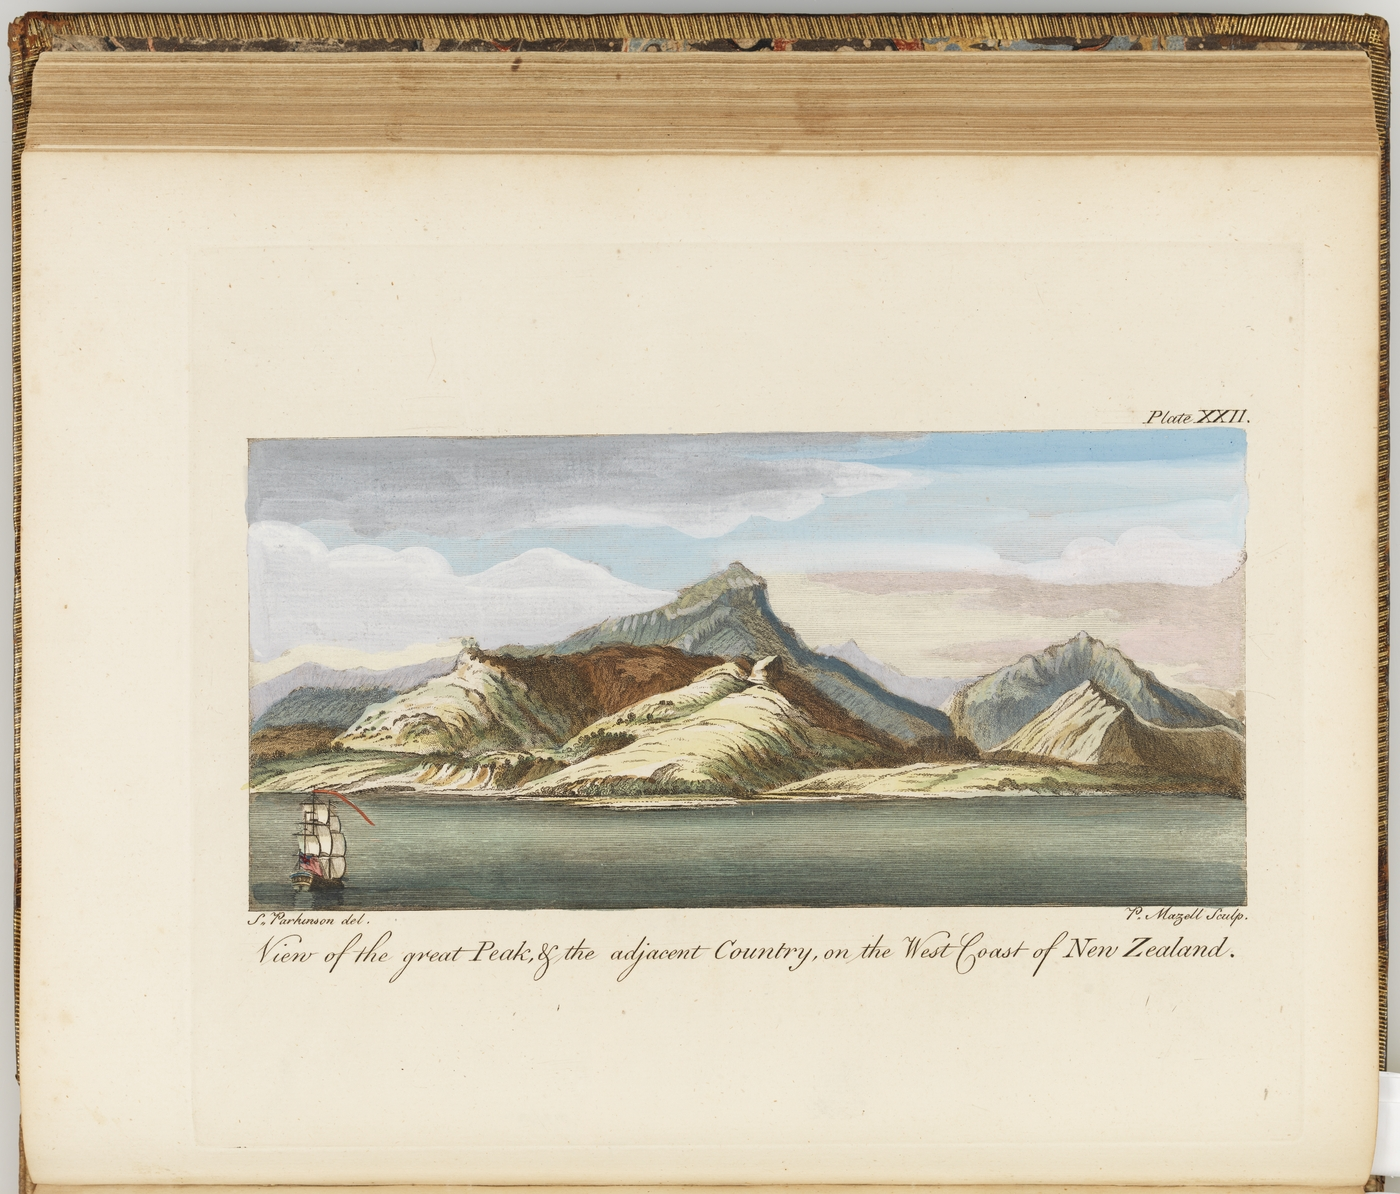 A journal of a voyage to the South Seas : in His Majesty's ship, the Endeavour : faithfully transcribed from the papers of the last Sydney Parkinson, draughtsman to Joseph Banks, esq. on his late expedition with Dr. Solander - View of peak